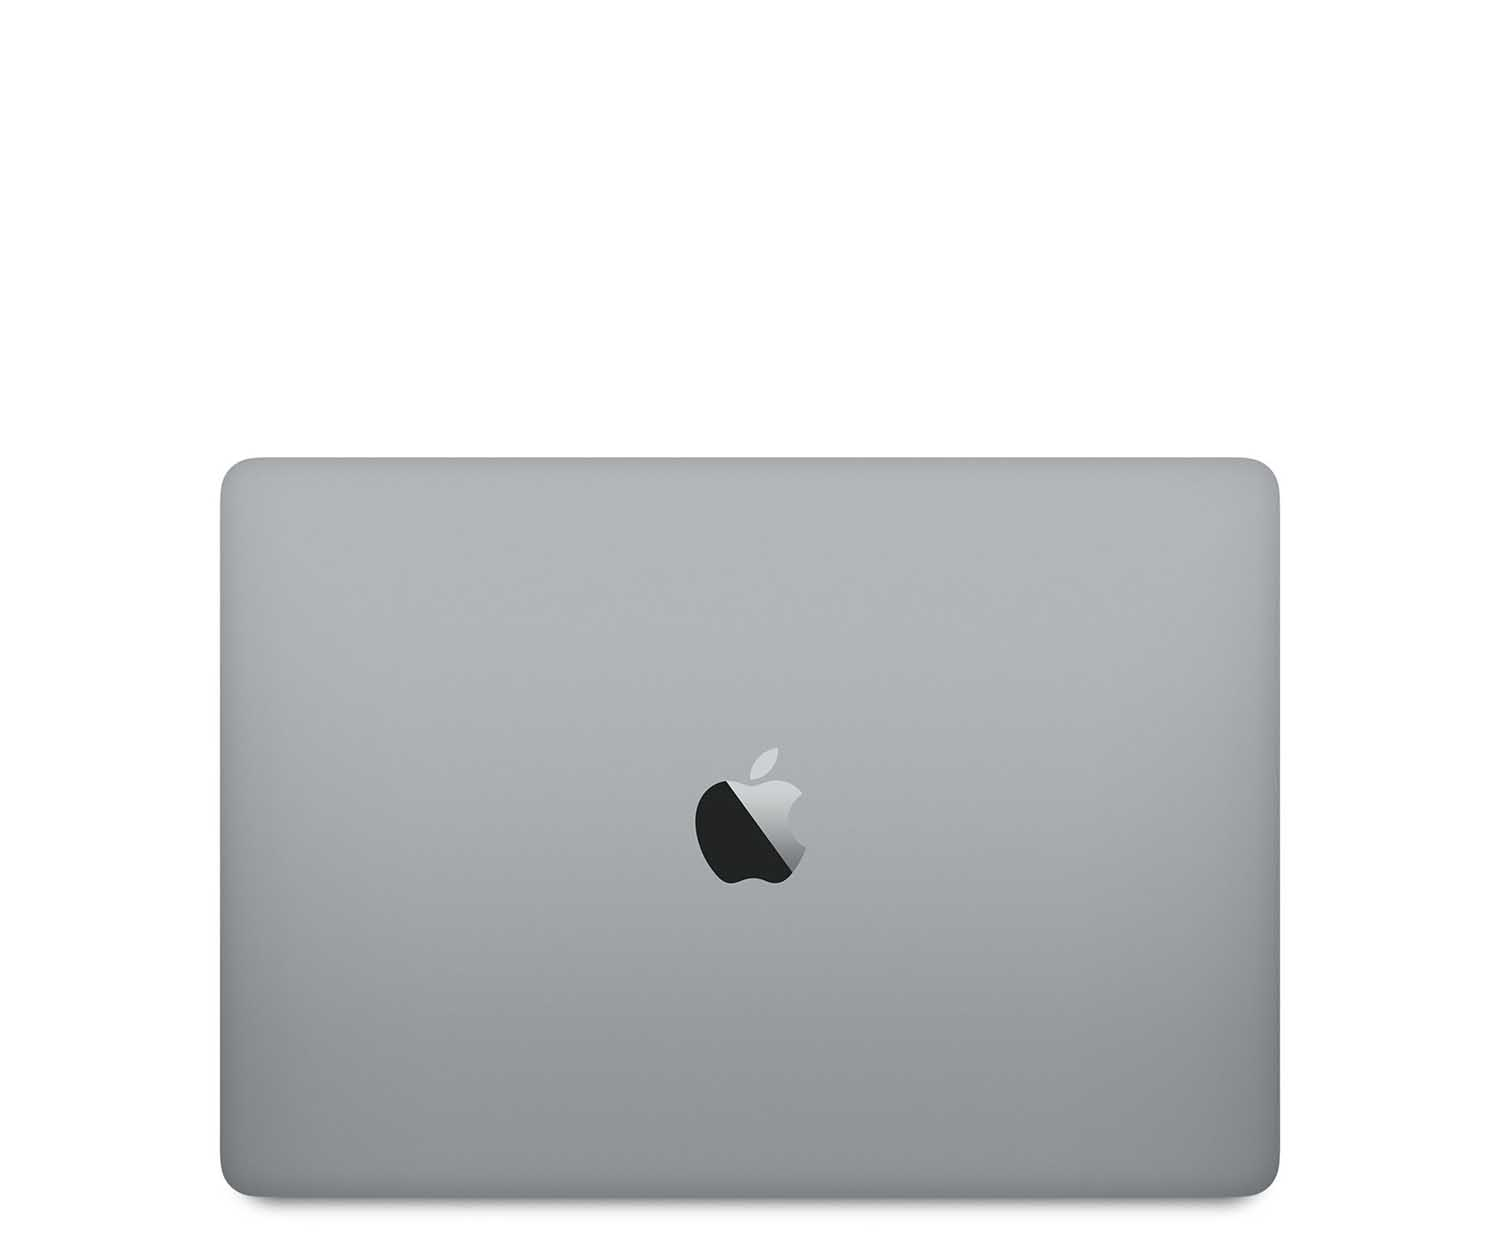 macbook pro 13 mit touch bar 2 9 ghz core i5 512 gb ssd. Black Bedroom Furniture Sets. Home Design Ideas